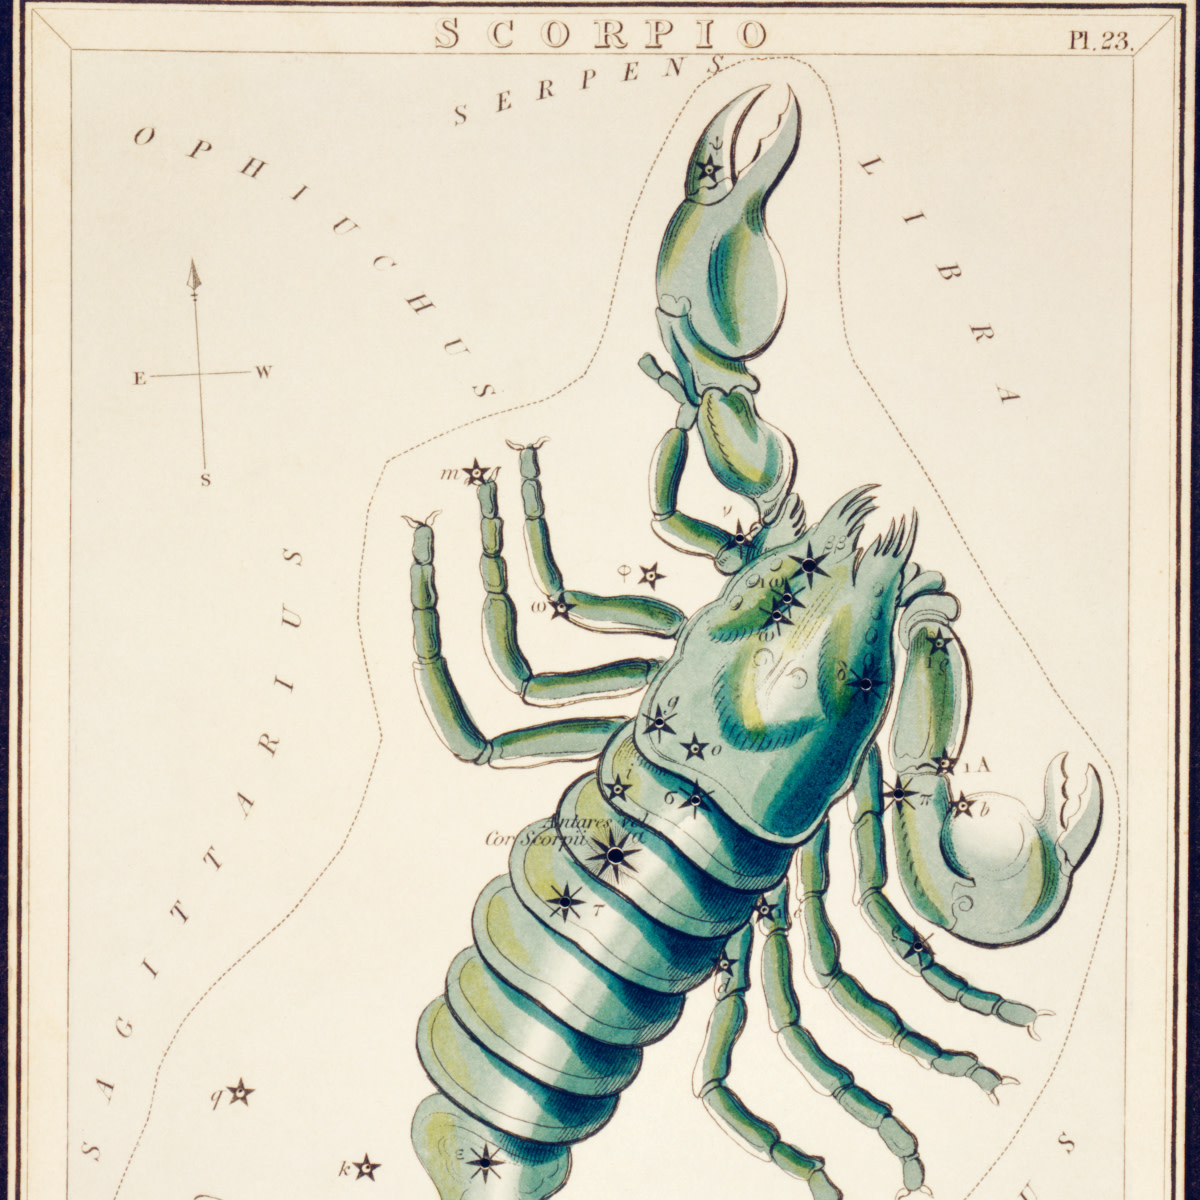 Sidney Hall's astronomical chart illustration of the Scorpio. Original from Library of Congress.